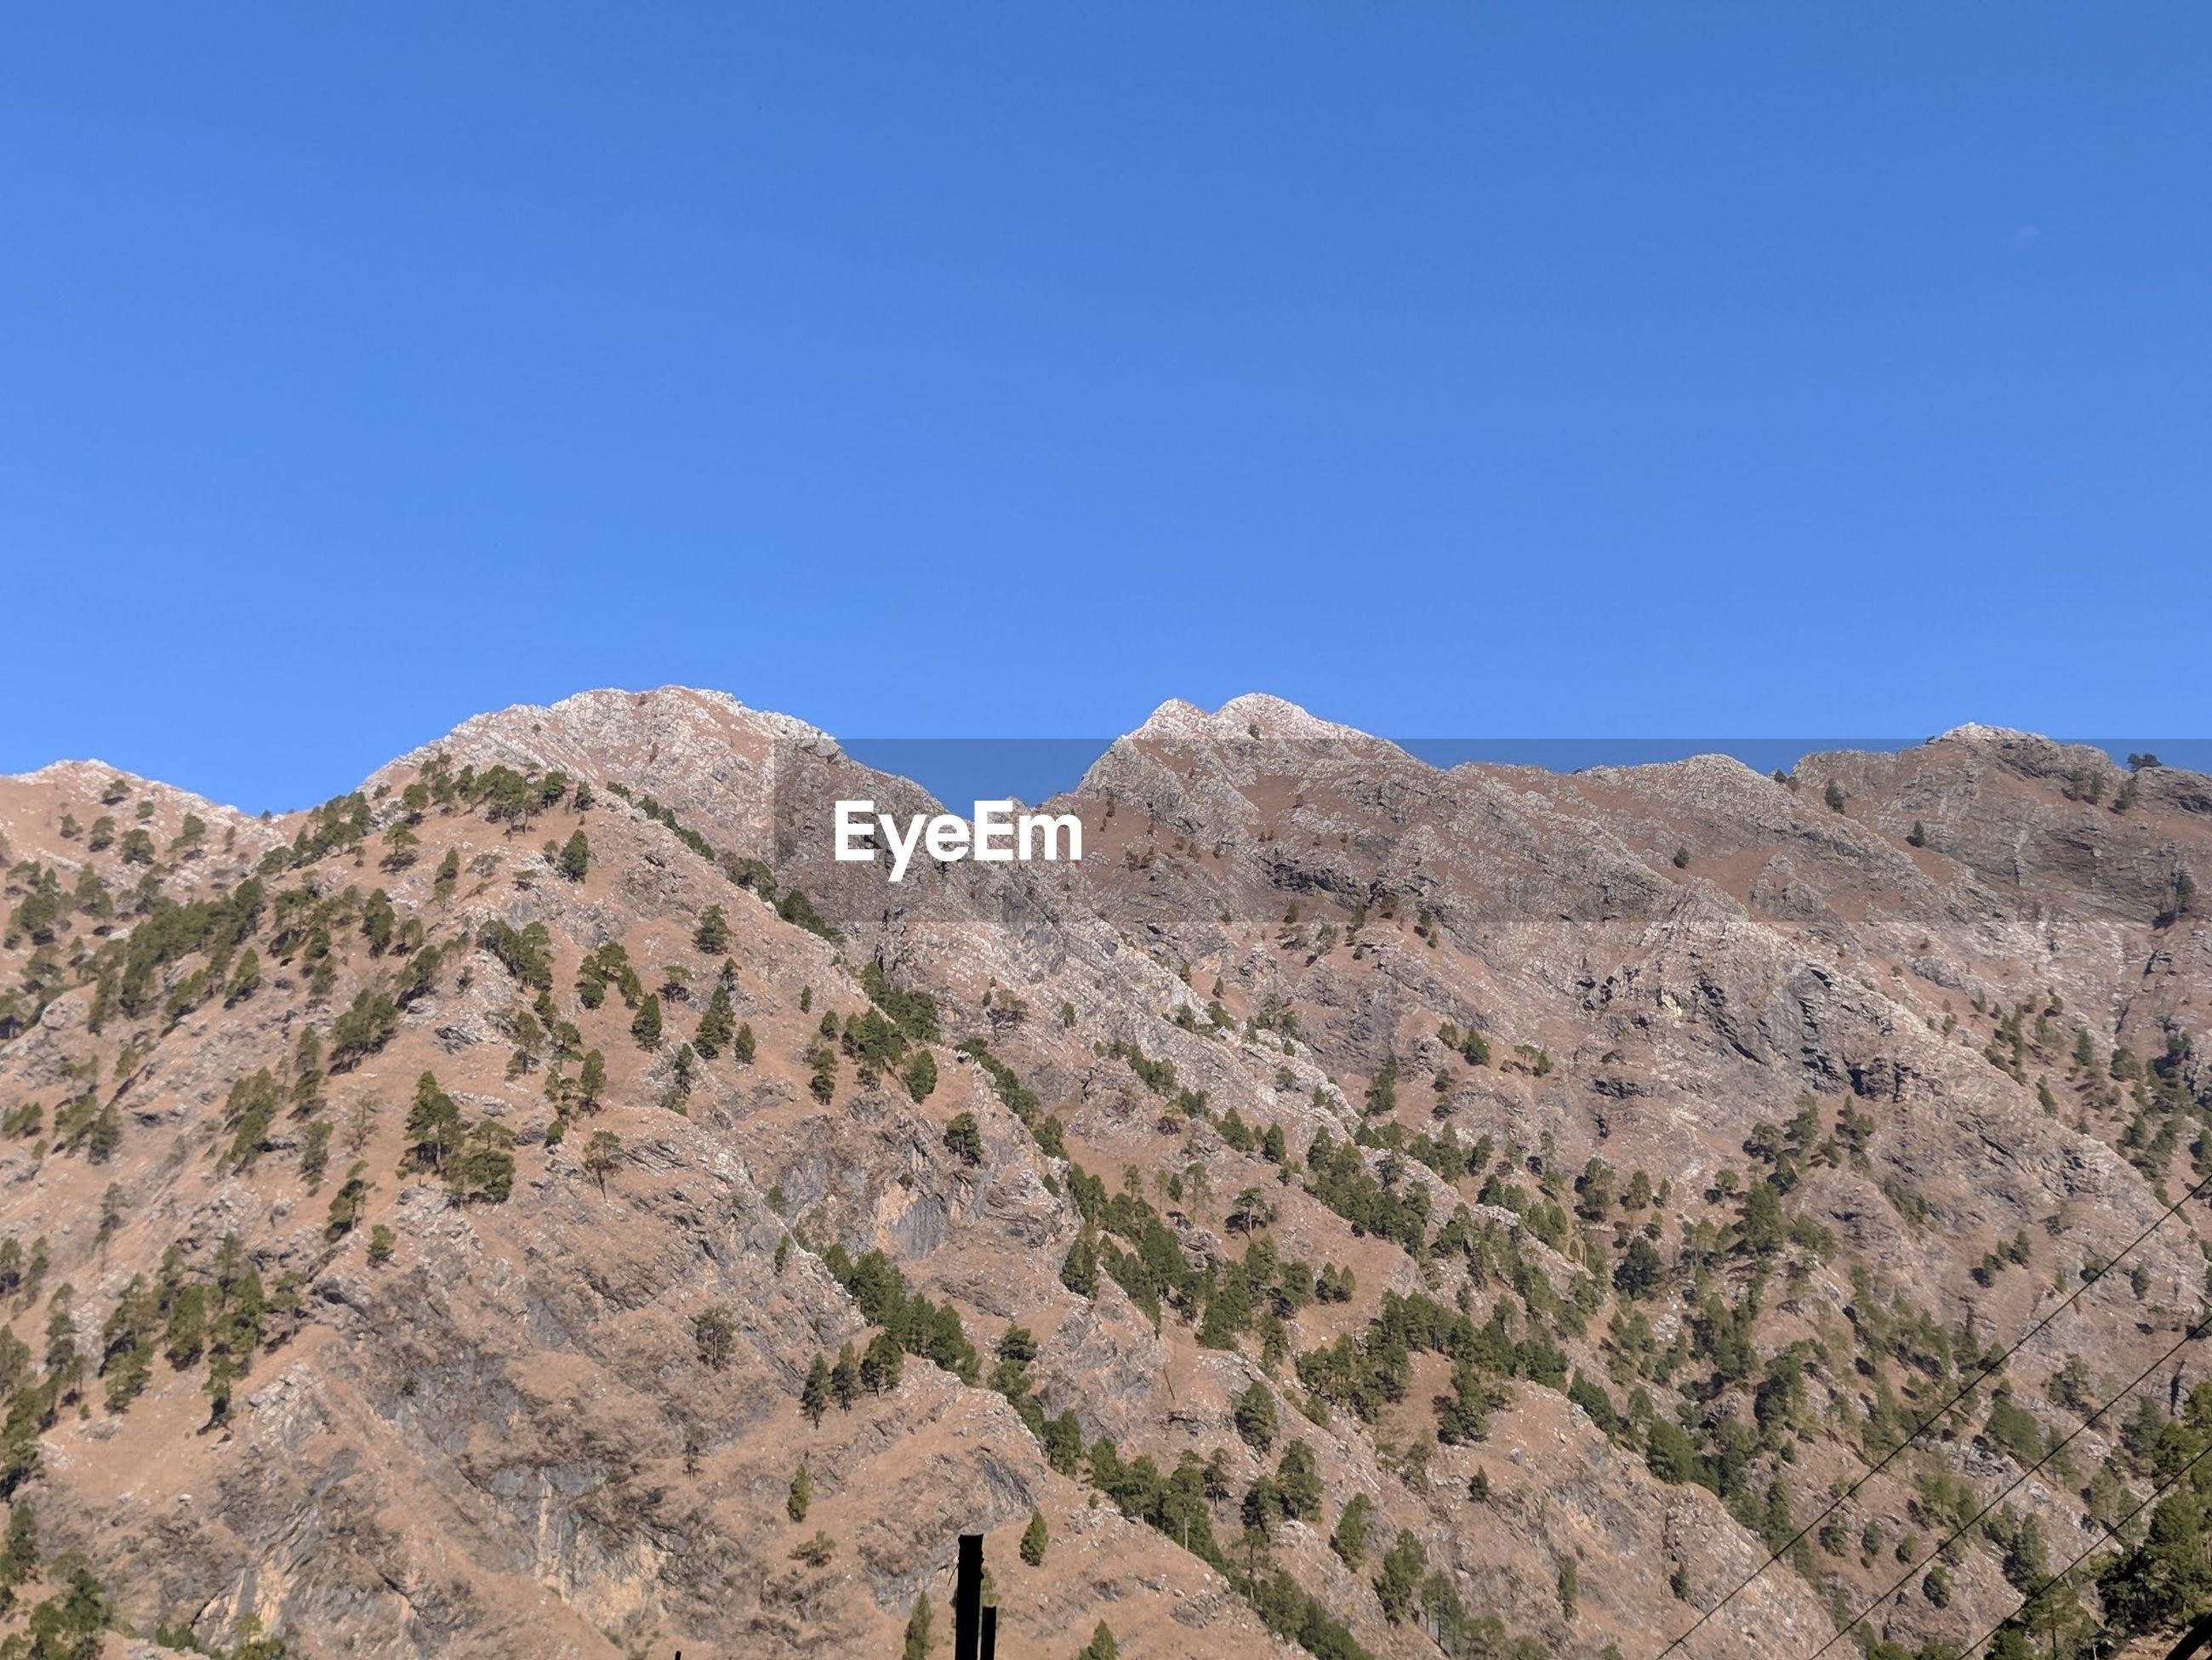 SCENIC VIEW OF MOUNTAIN AGAINST CLEAR SKY